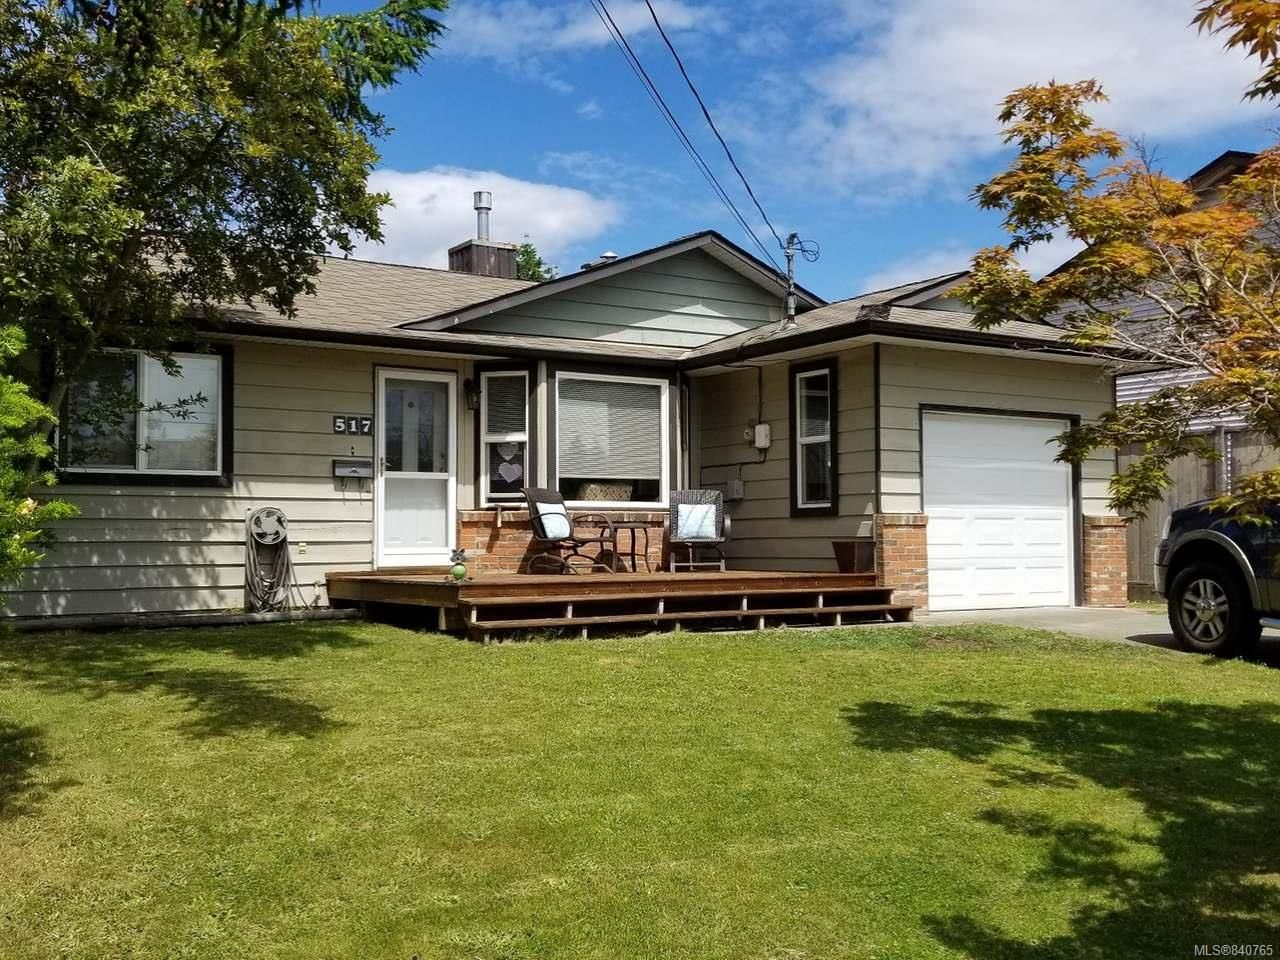 Main Photo: 517 Holly Pl in CAMPBELL RIVER: CR Willow Point House for sale (Campbell River)  : MLS®# 840765